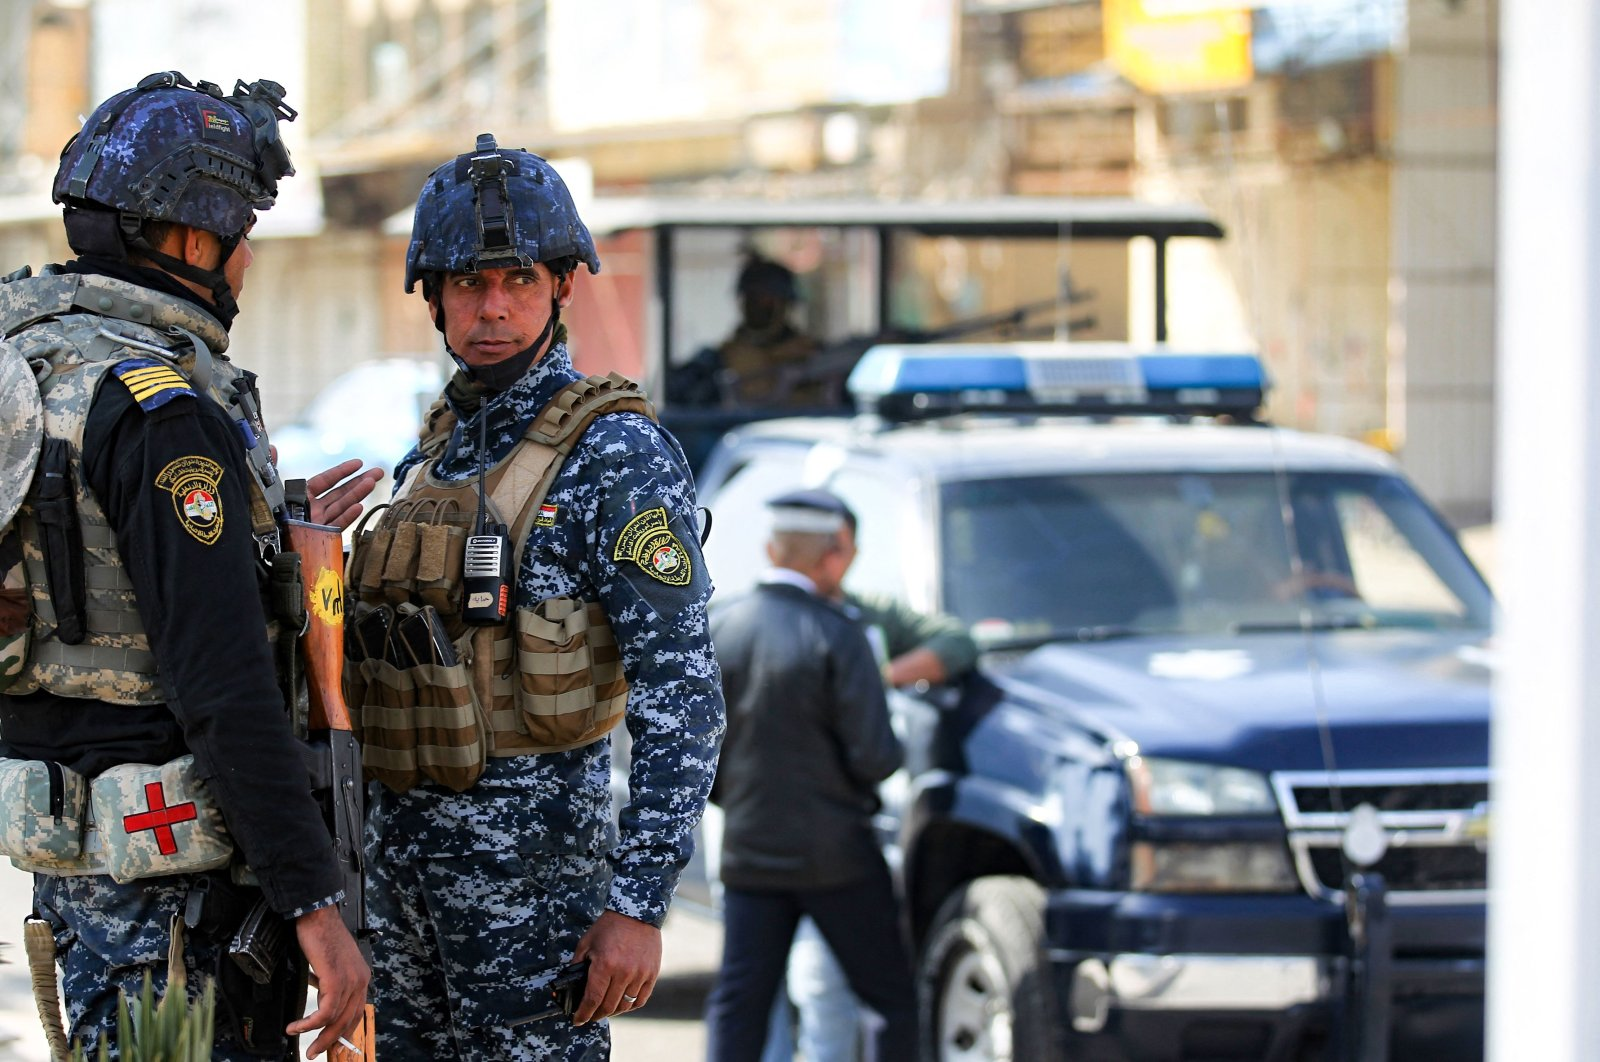 Members of the Iraqi federal police forces stand guard at a checkpoint in a street in the capital Baghdad, Jan. 29, 2021,  (AFP Photo)